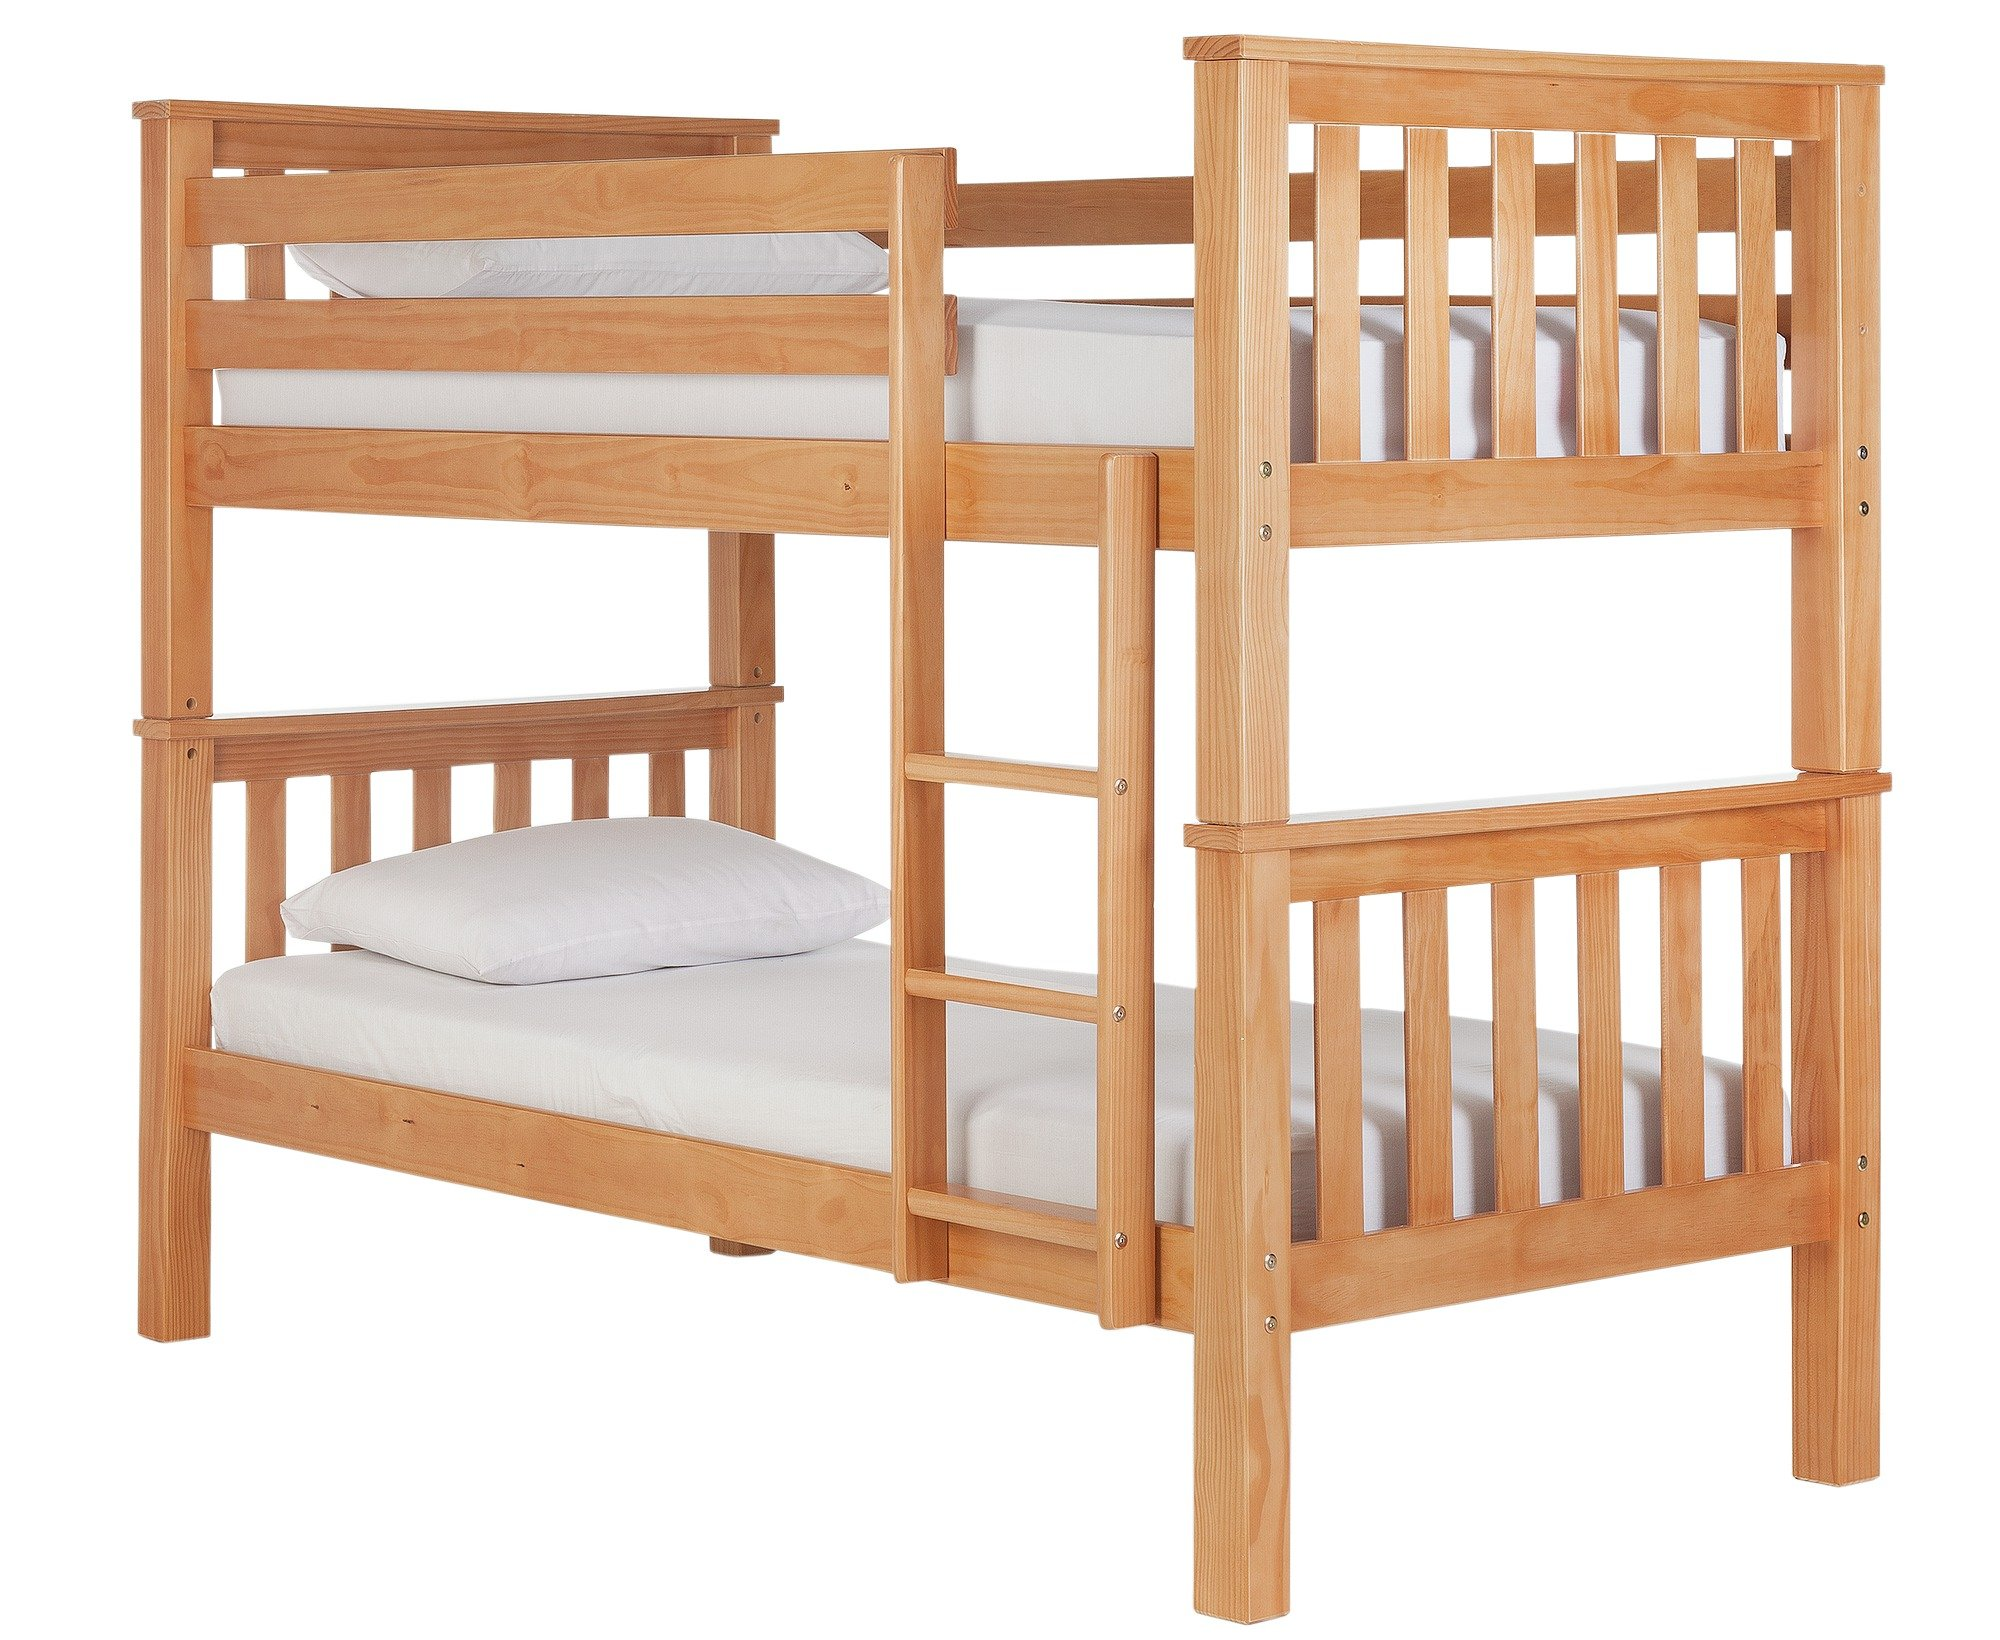 Argos Home Heavy Duty Pine Bunk Bed Frame